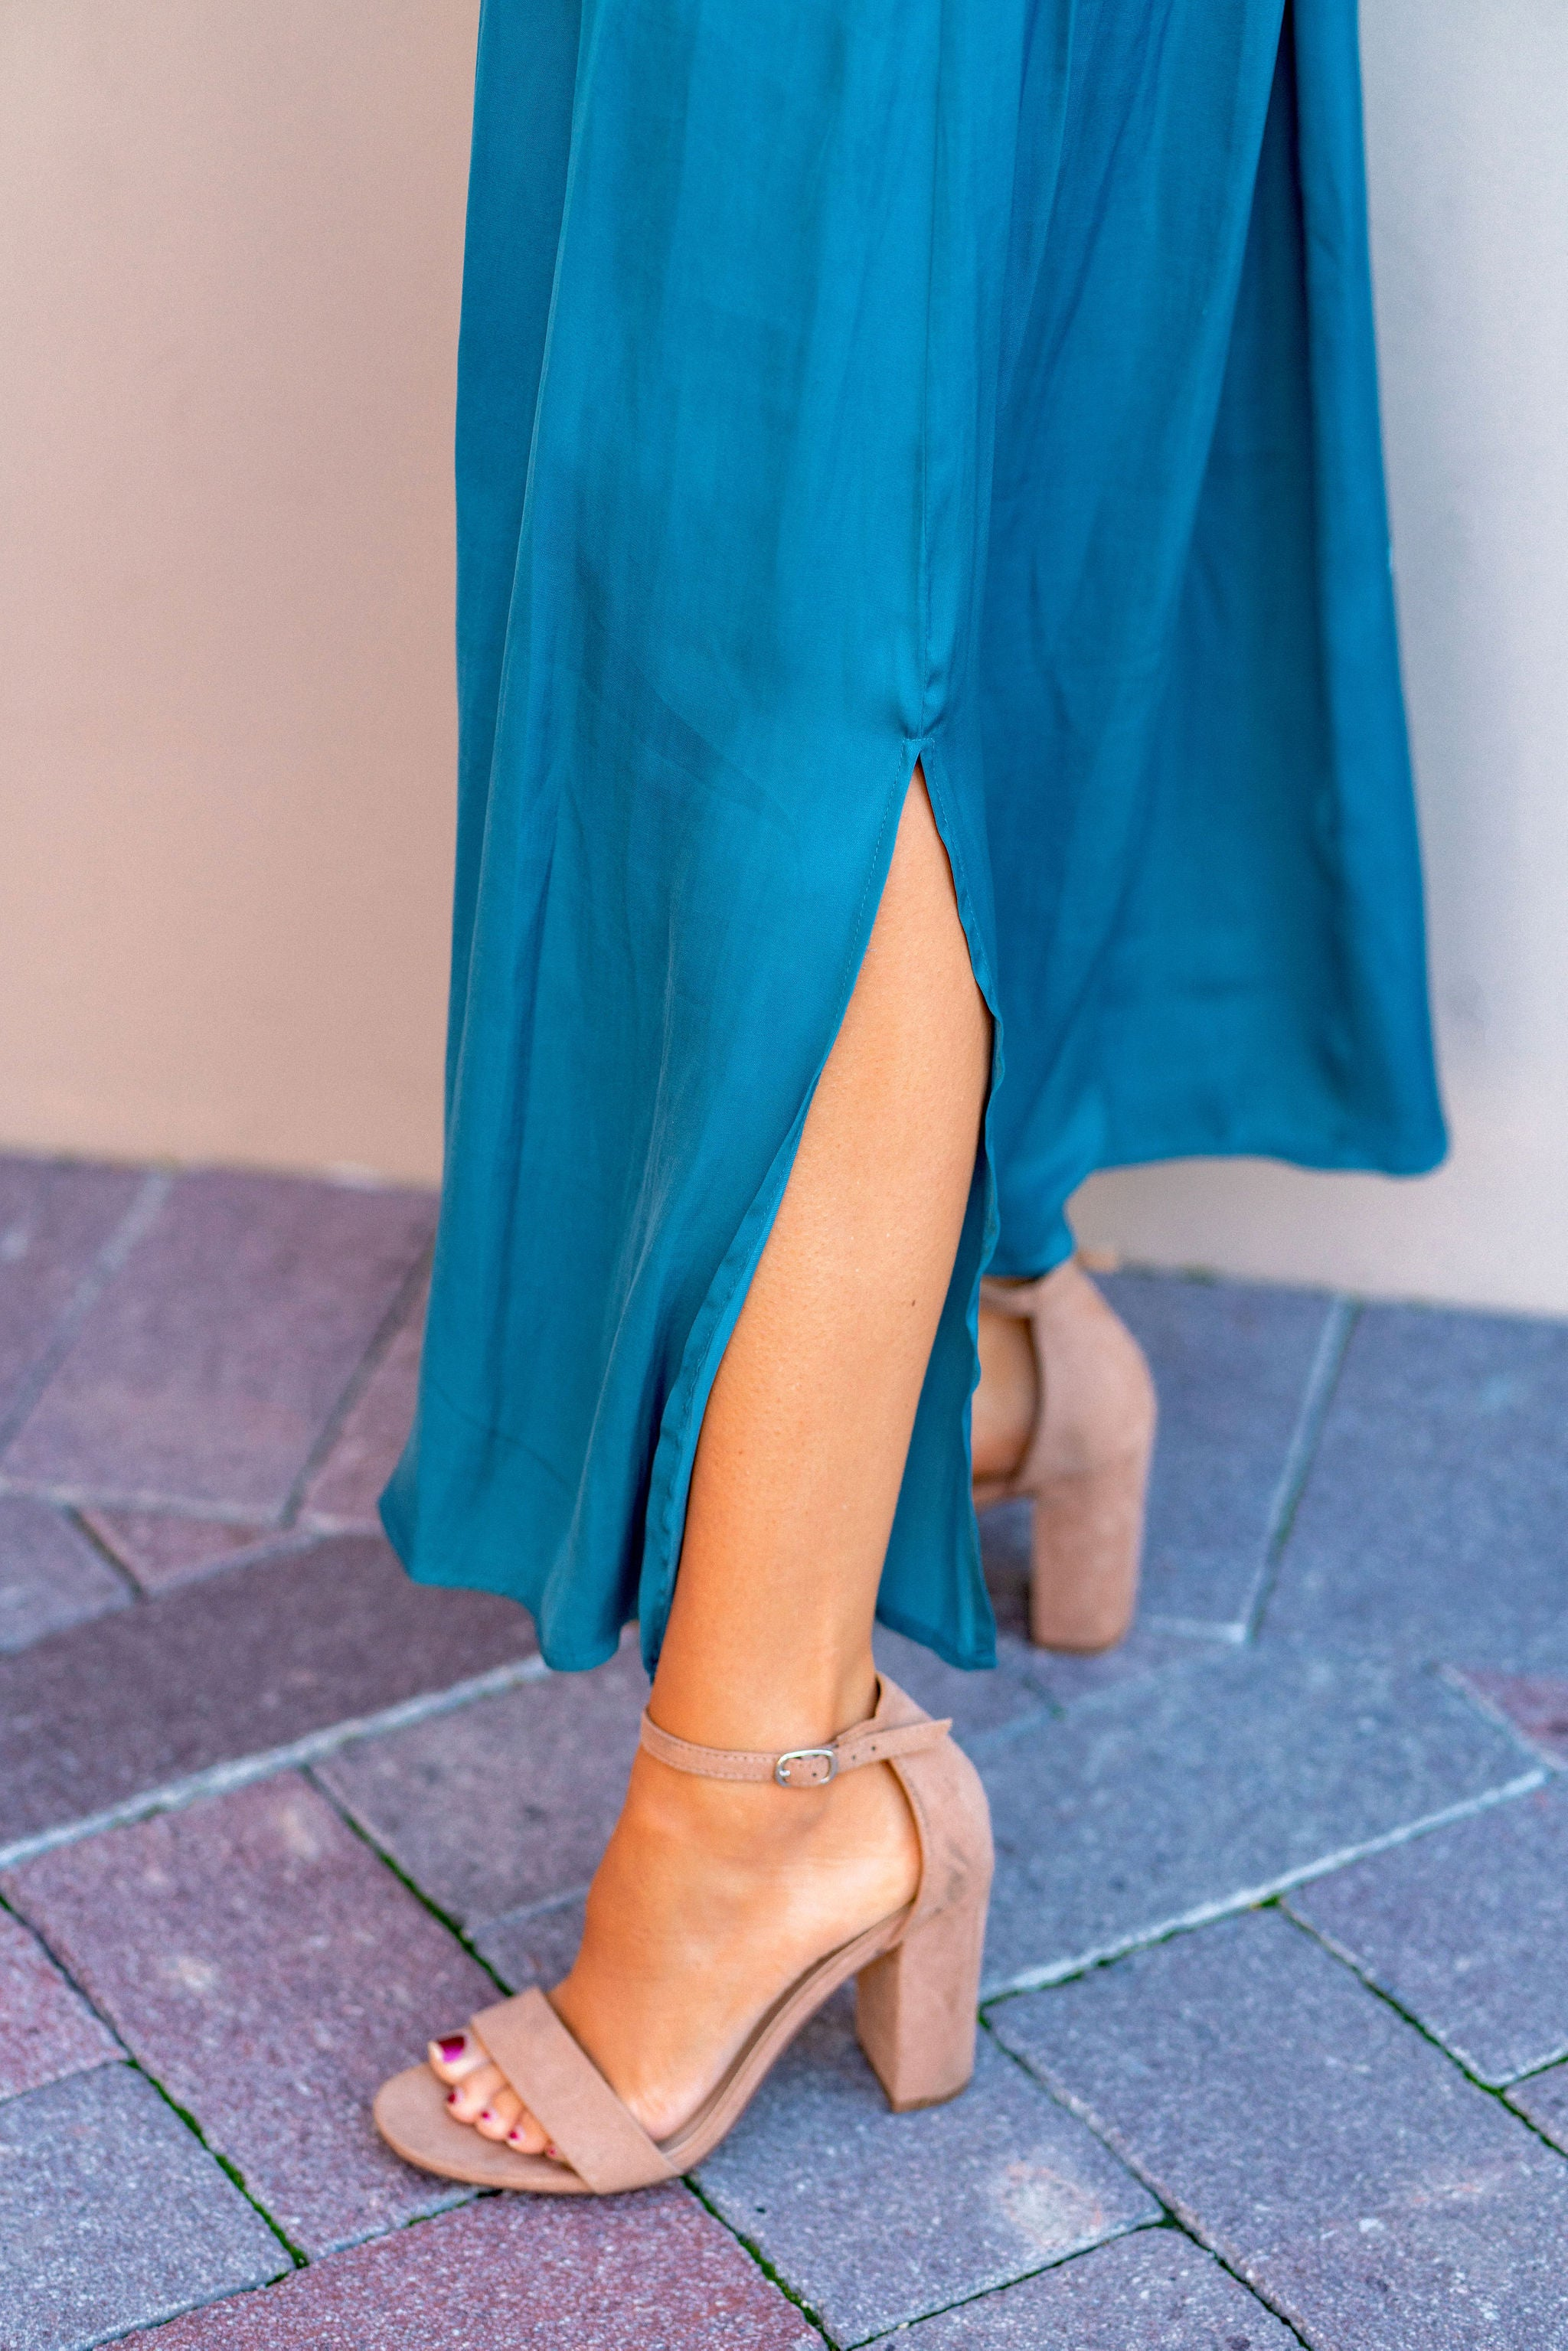 THE LOVETT MAXI SKIRT IN TEAL